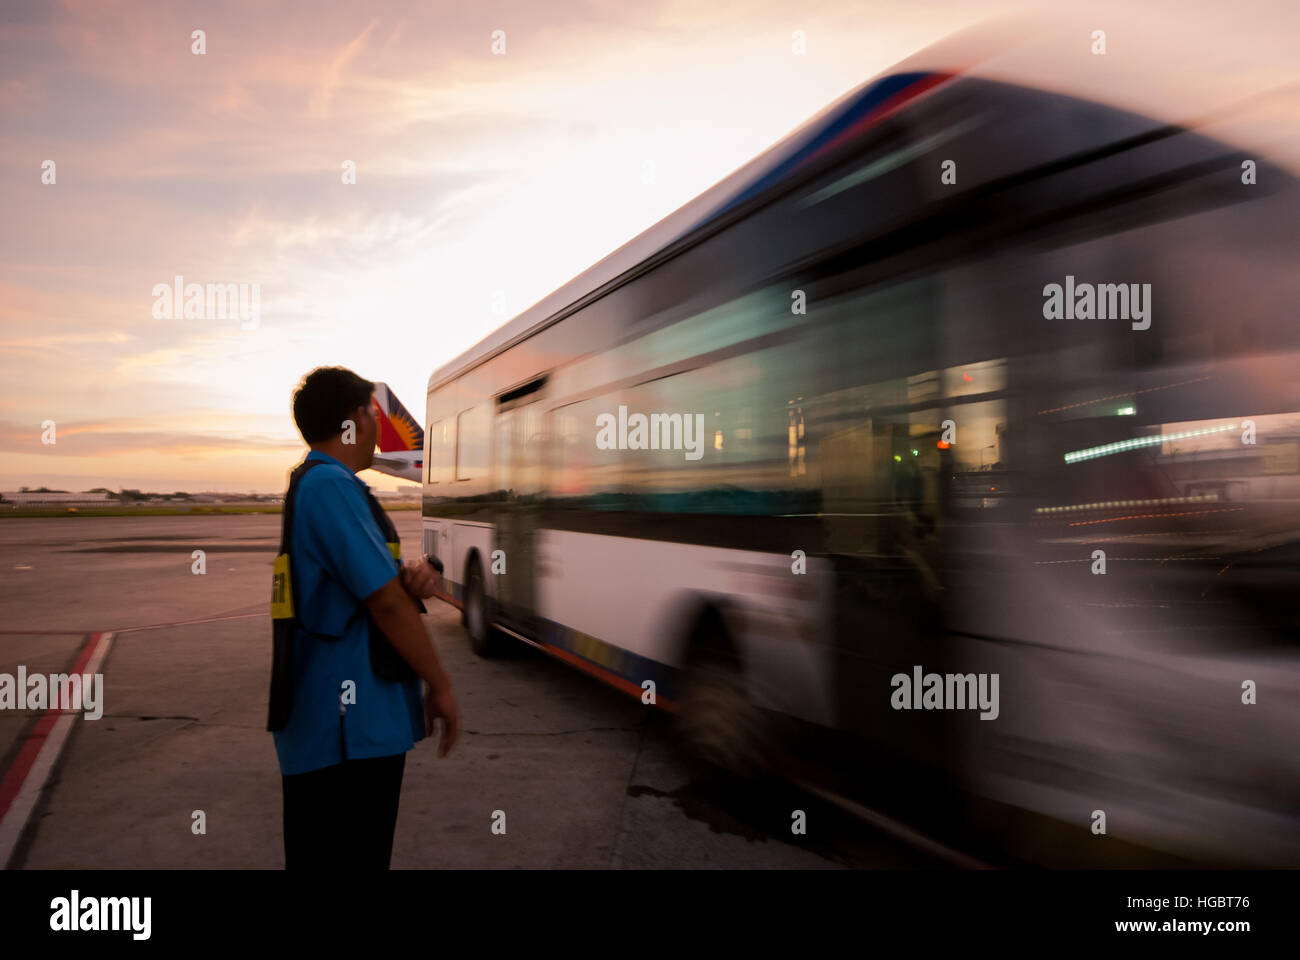 Airline transfer bus from the tarmac to the arrival area. - Stock Image